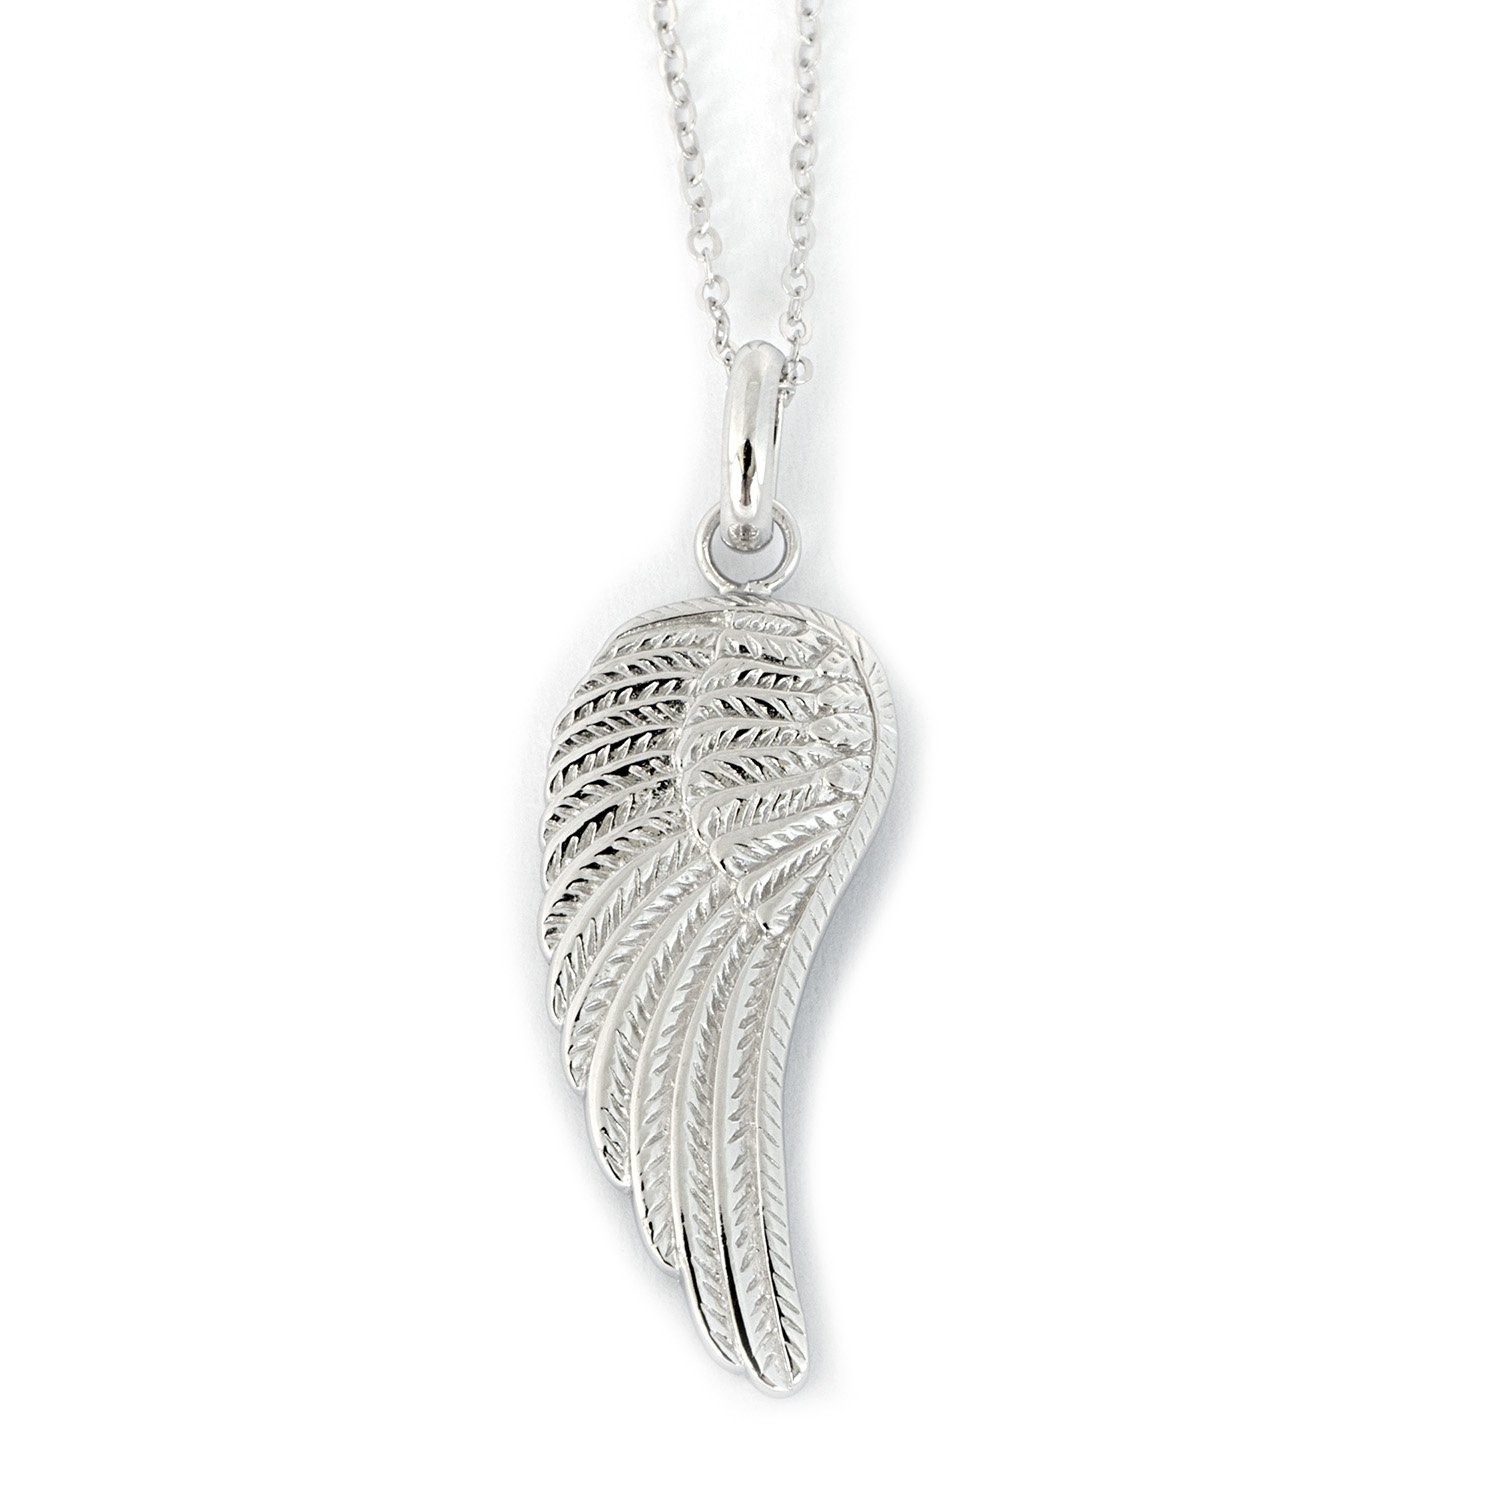 Solid Sterling Silver Rhodium Plated One Large Wing Pendant Necklace